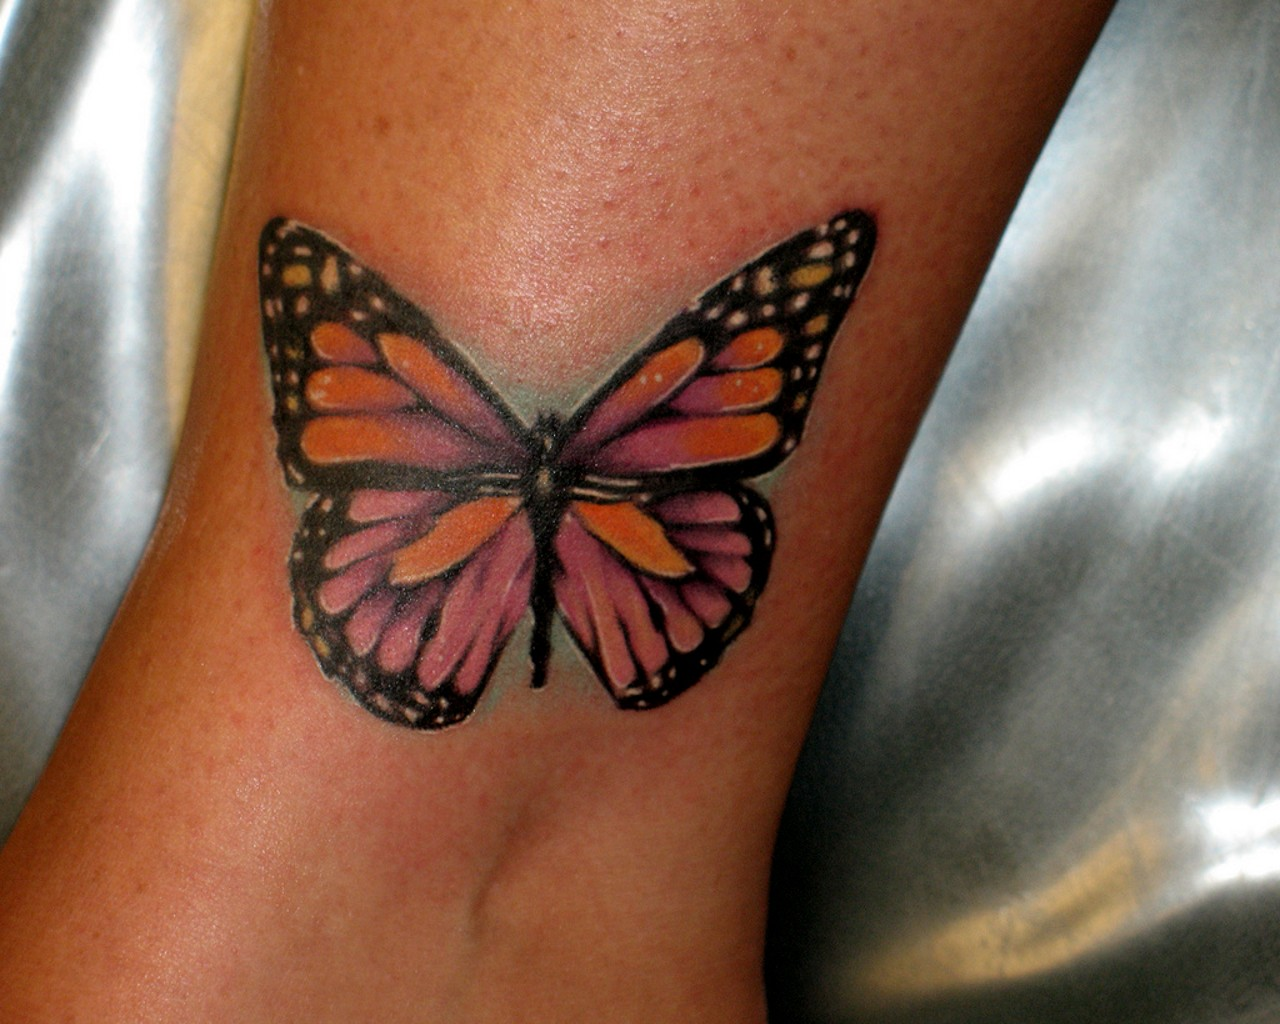 Ankle Butterfly Tattoo